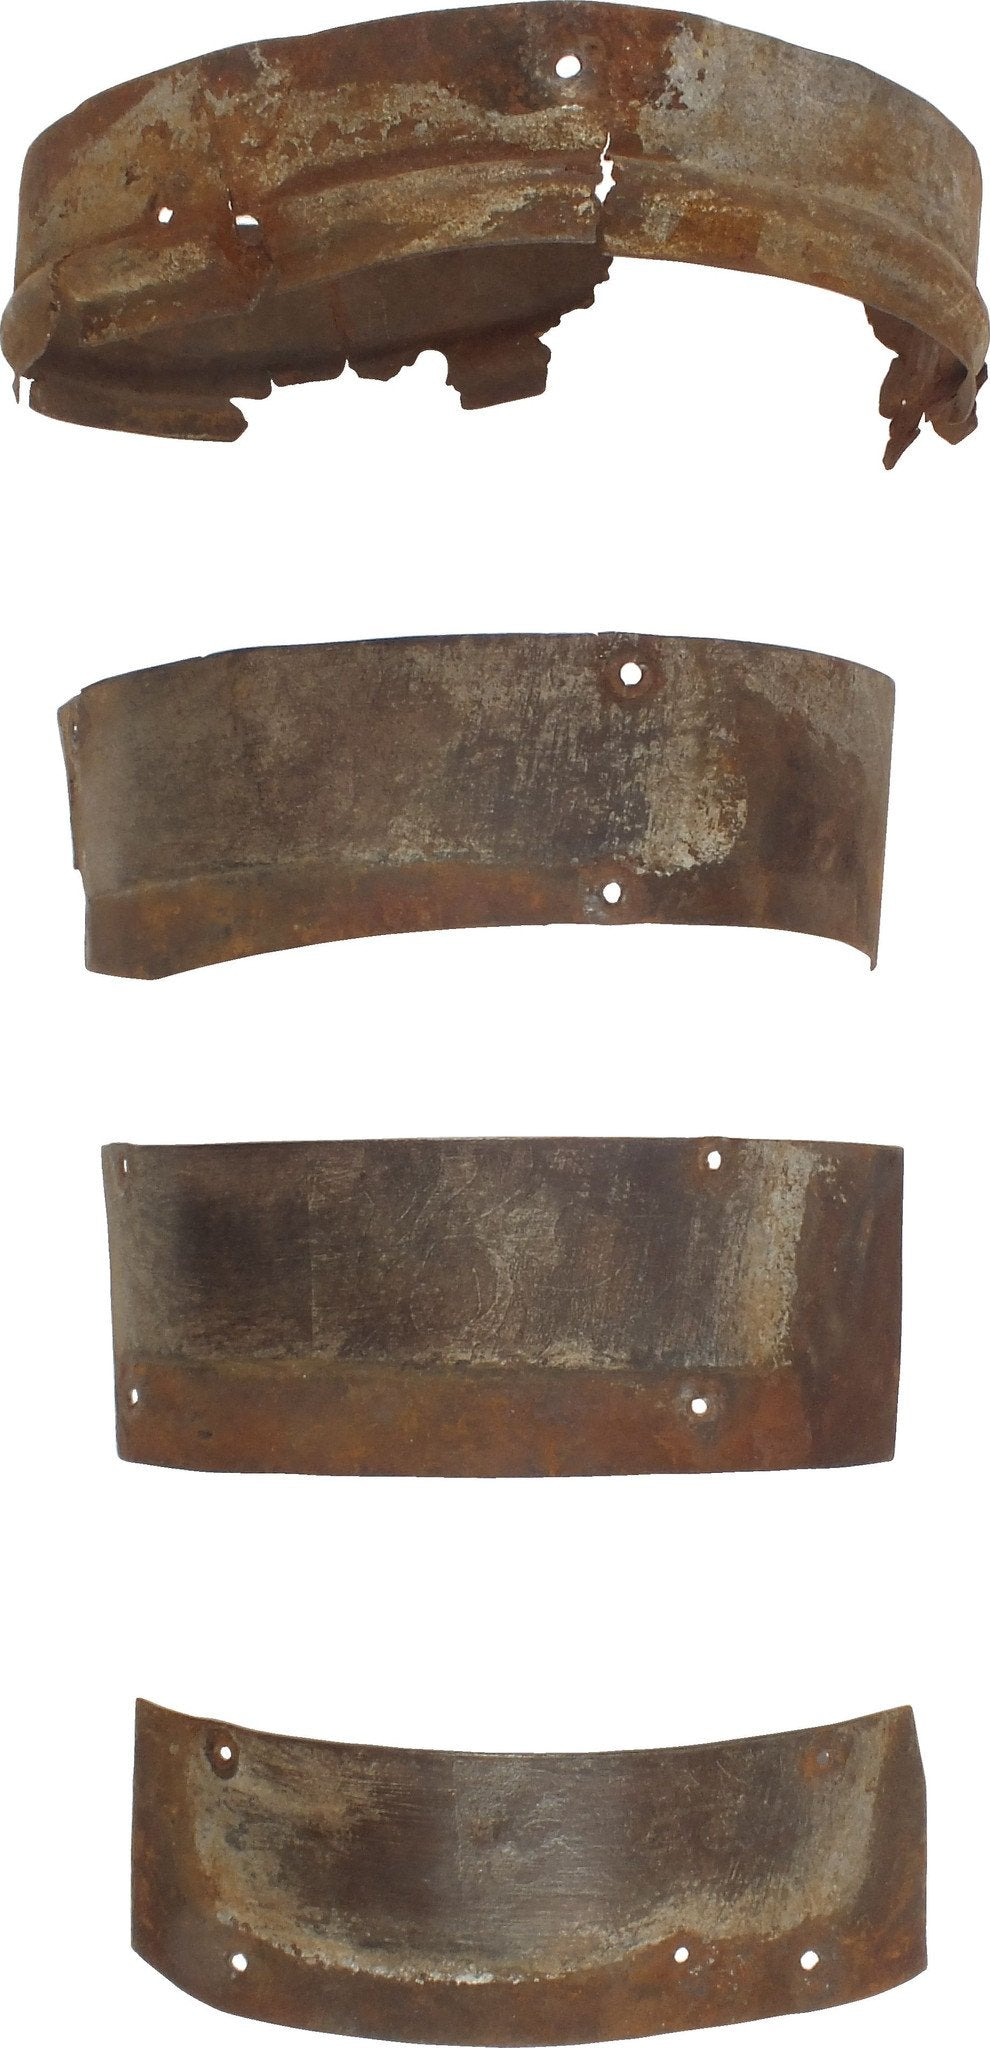 Antique Armor Plates - Product